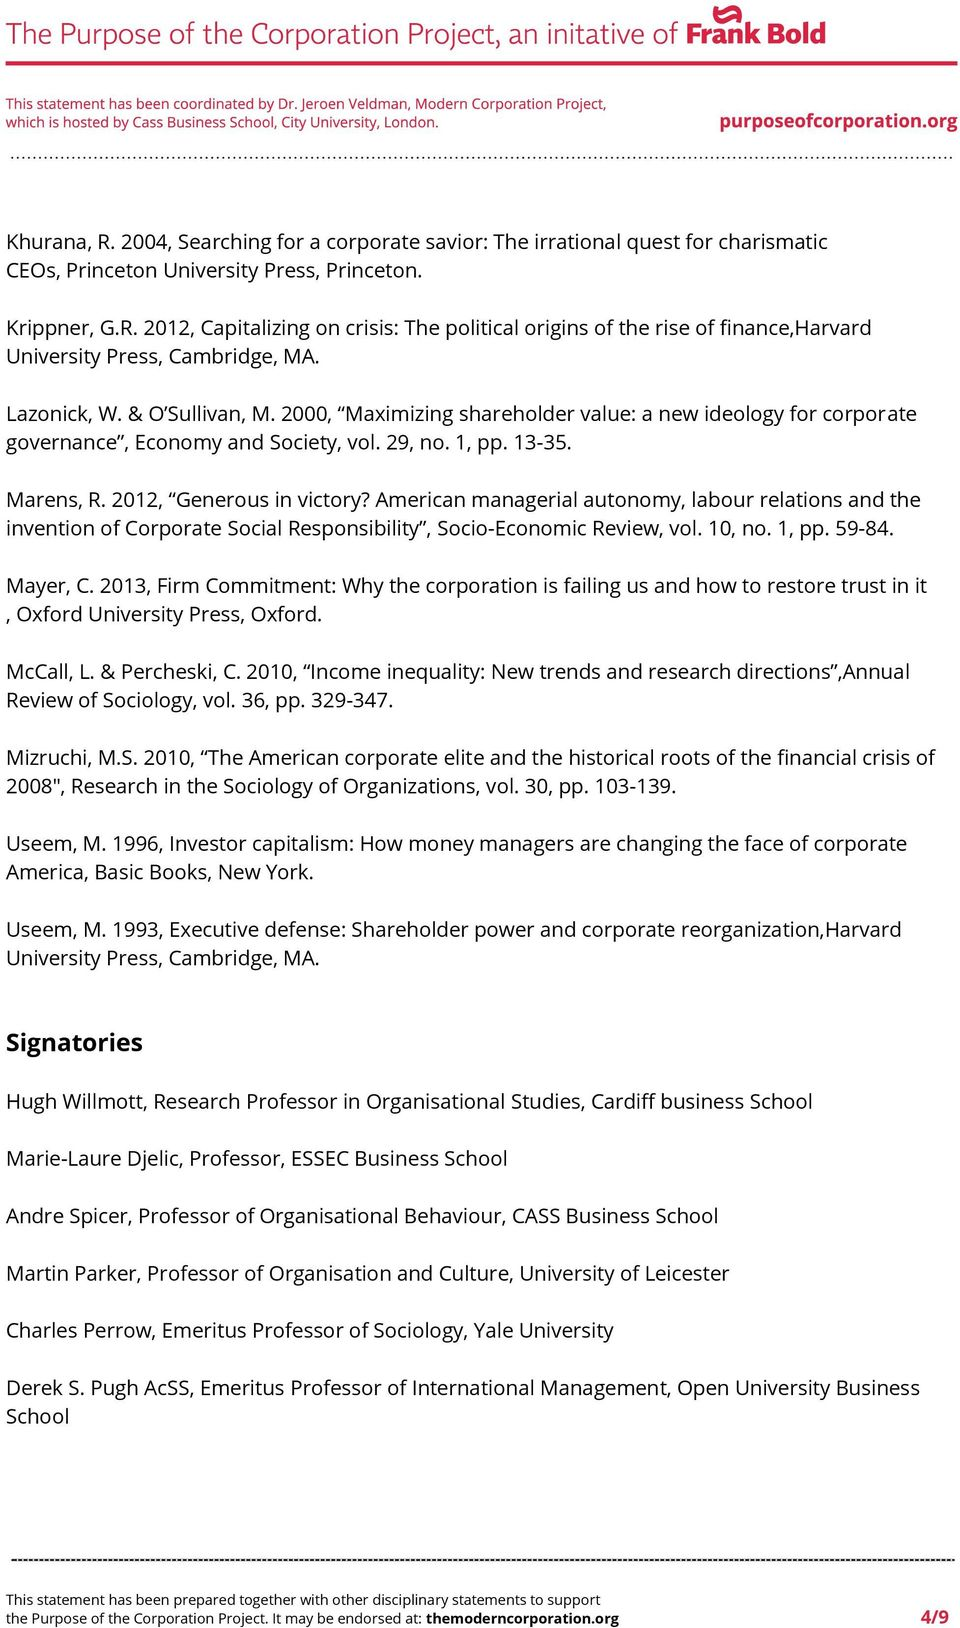 American managerial autonomy, labour relations and the invention of Corporate Social Responsibility, Socio-Economic Review, vol. 10, no. 1, pp. 59-84. Mayer, C.